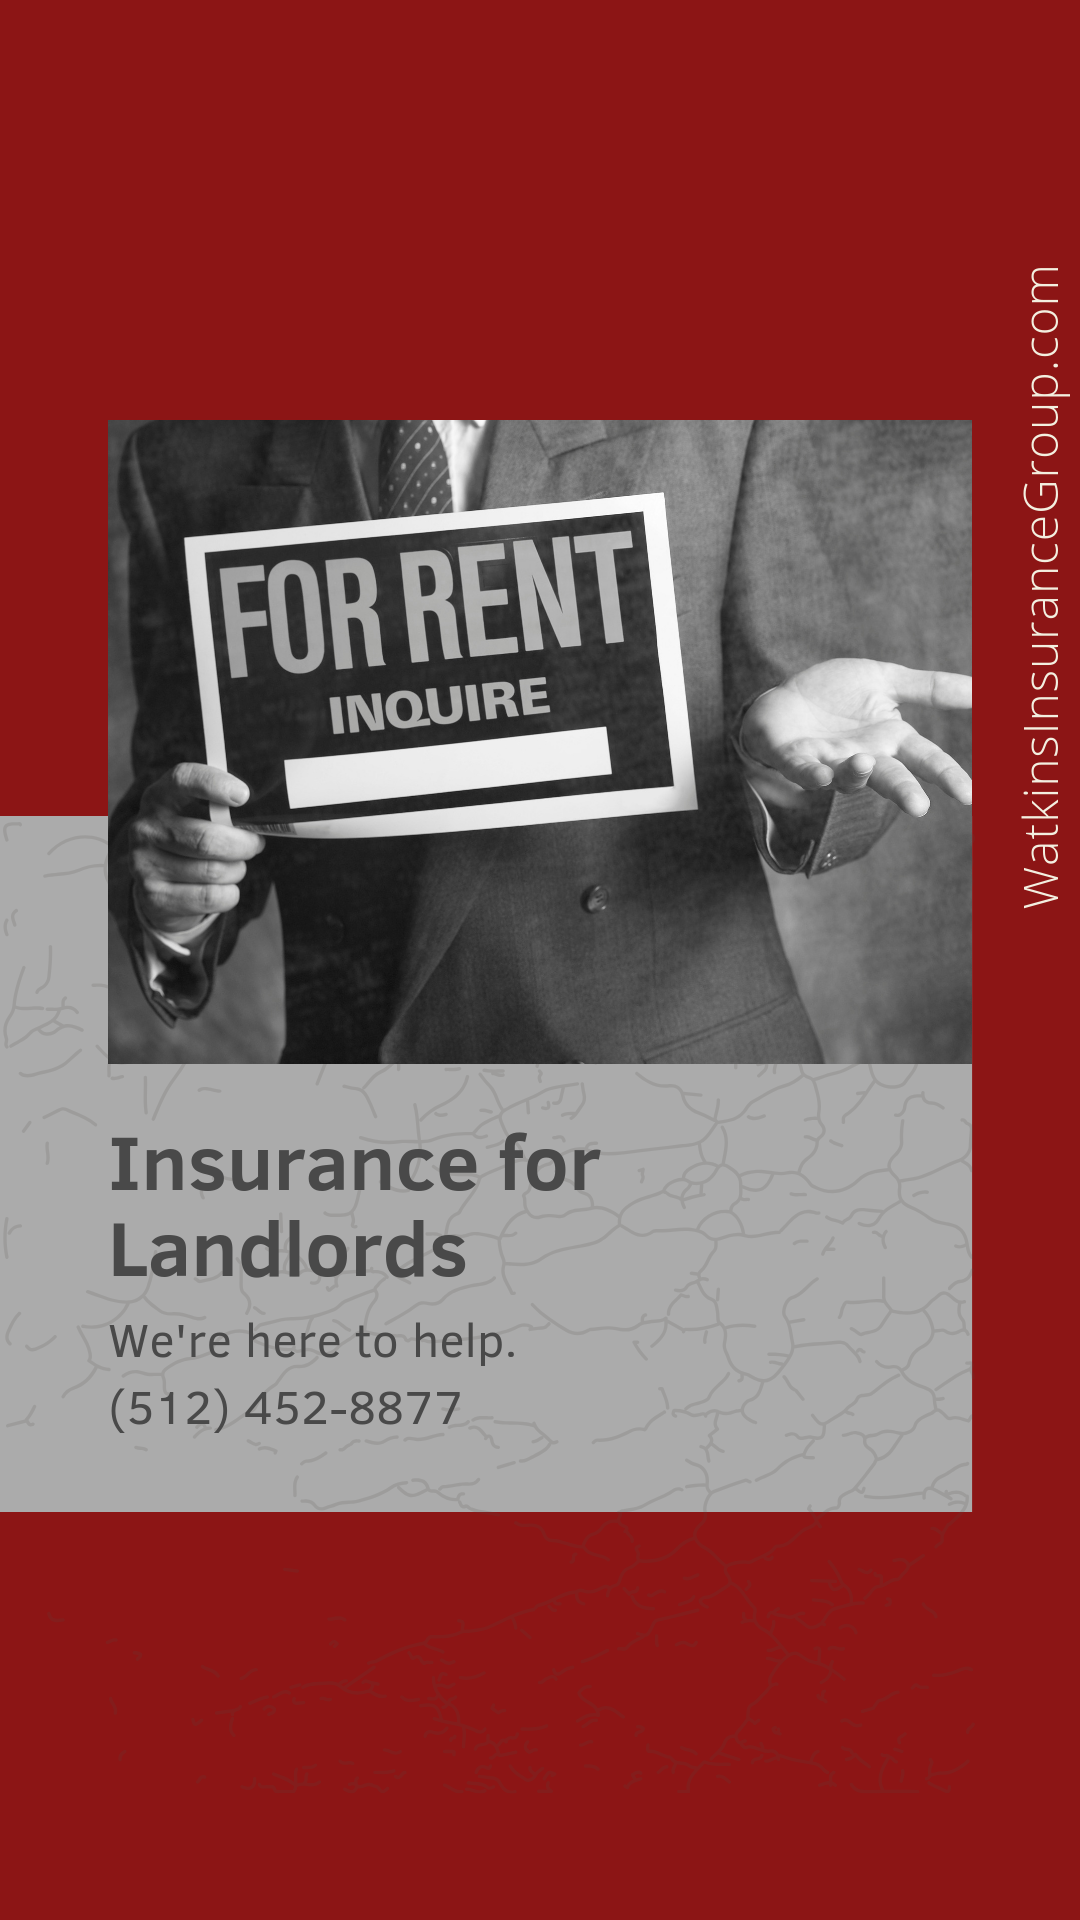 Landlord Insurance in Austin, Texas Being a landlord